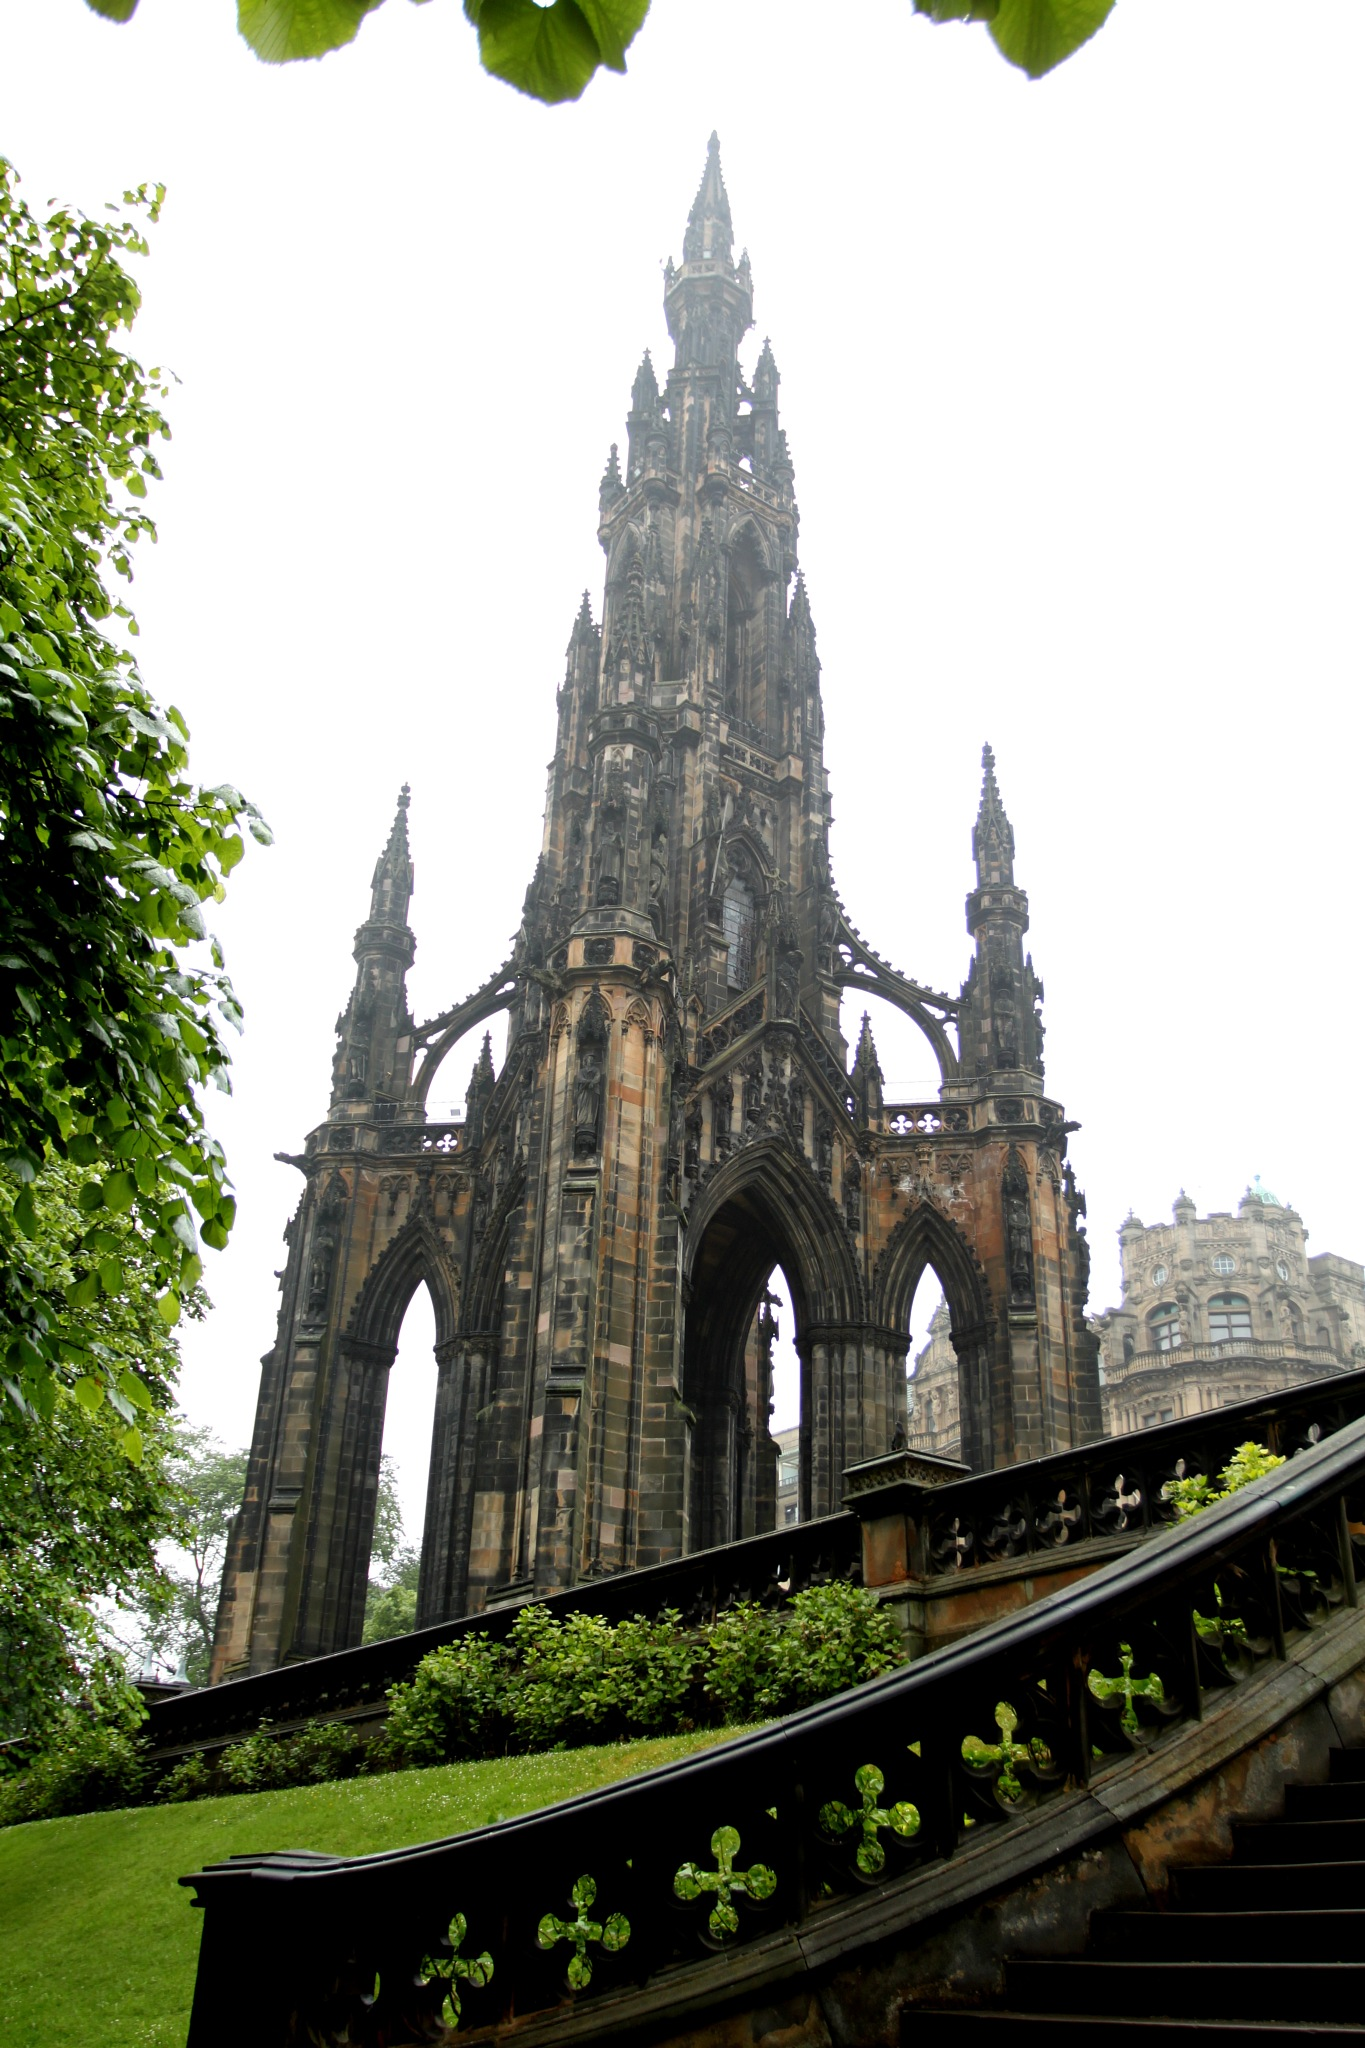 Scott Monument by Carmel McKenna